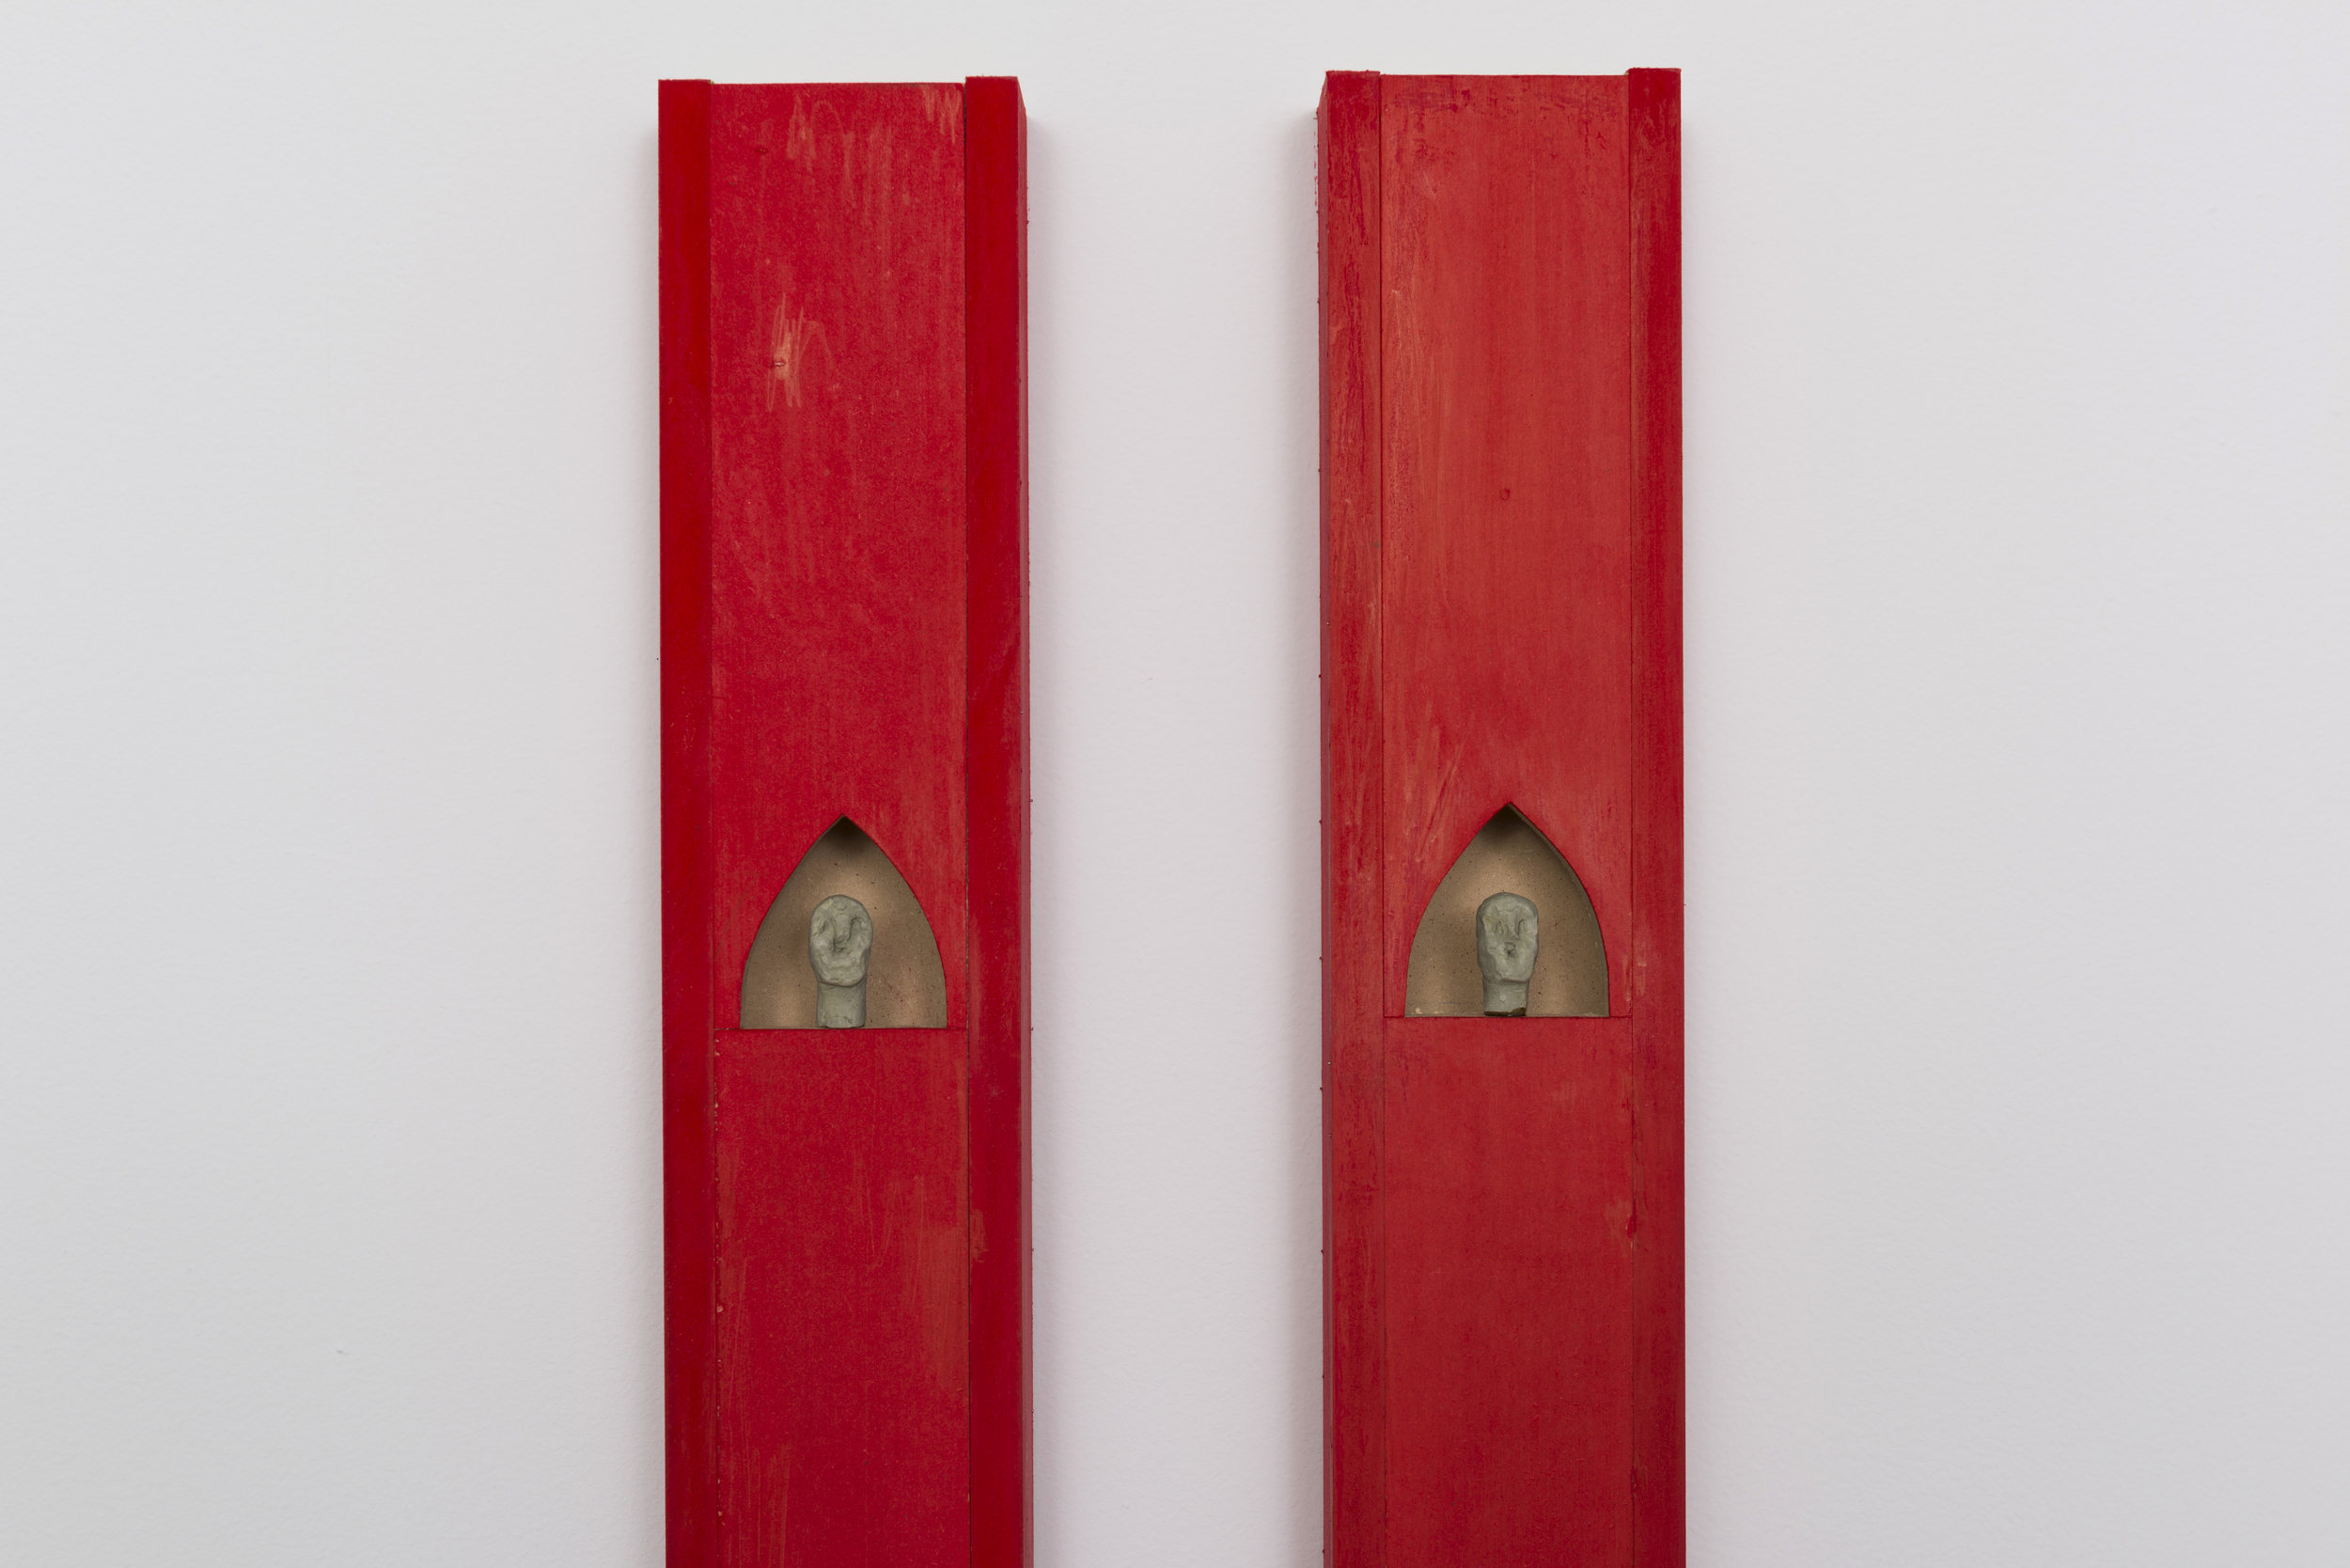 Harry Gould Harvey IV  Cardinal Cloudbuster I & II   (detail)     2019 Colored pencil on MDF, air-dried clay 77 x 3.5 x 2.5 in